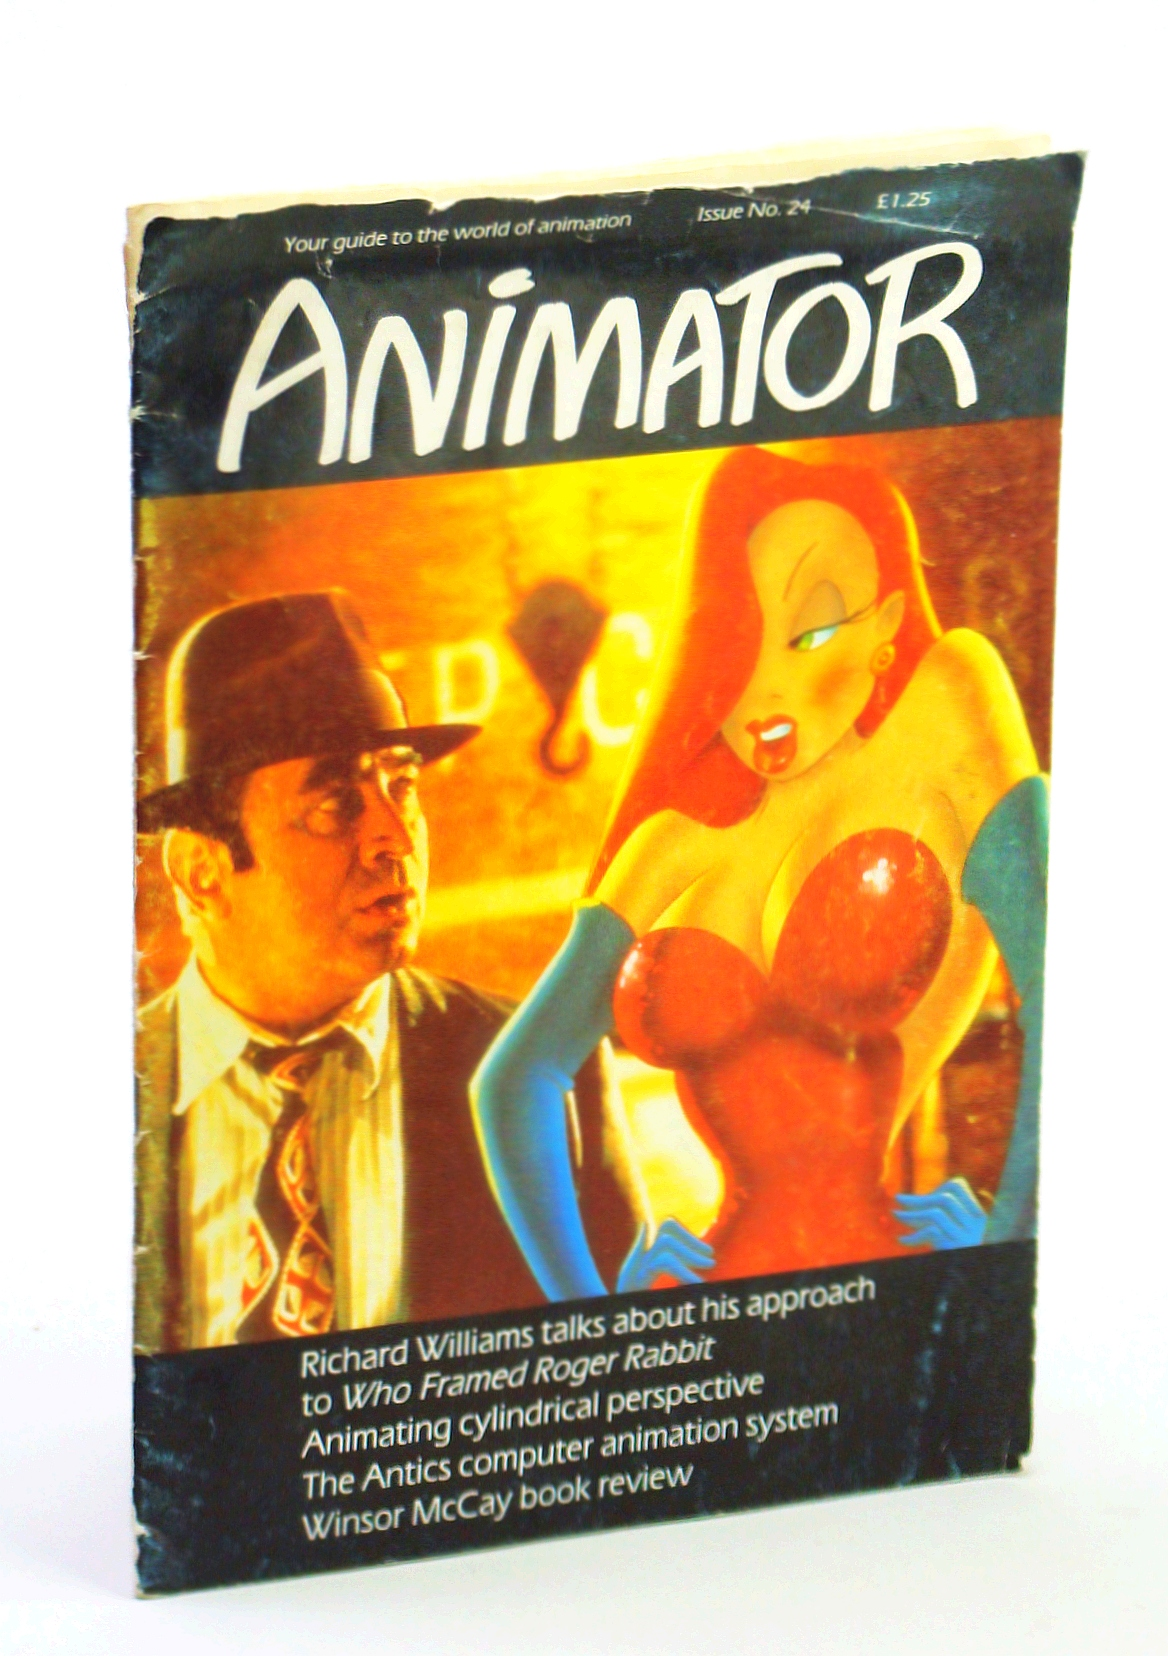 "Image for Animator [Magazine] - Your Guide to the World of Animation, Issue No. 24, December 1988 - Richard Williams and ""Who Framed Roger Rabbit"""